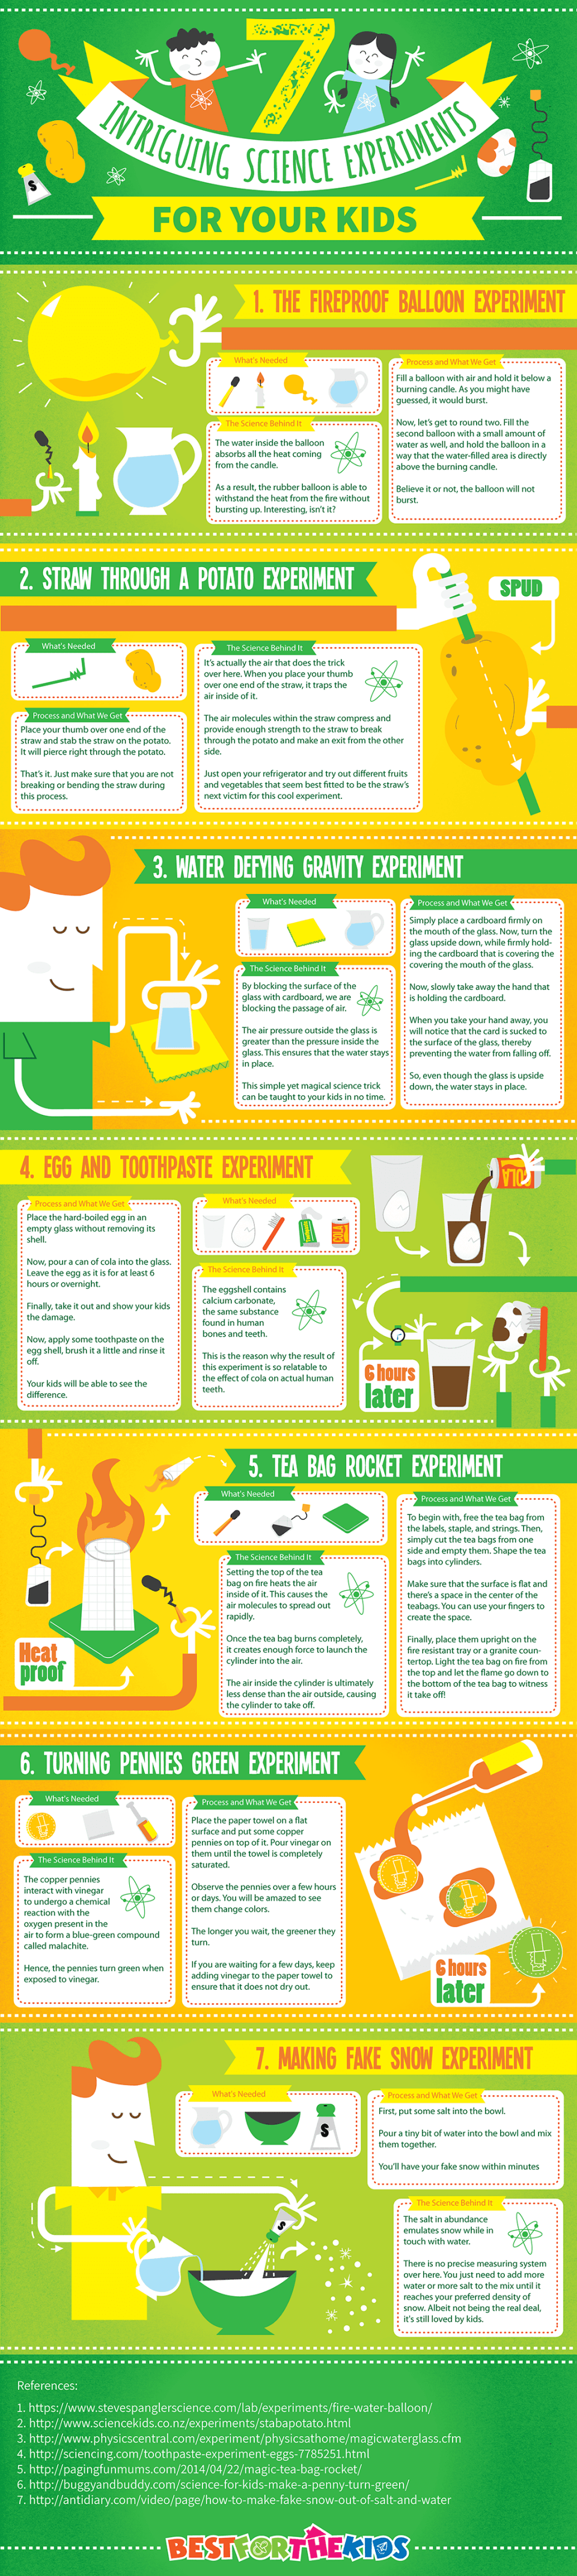 7 Intriguing Science Experiments for Kids Infographic